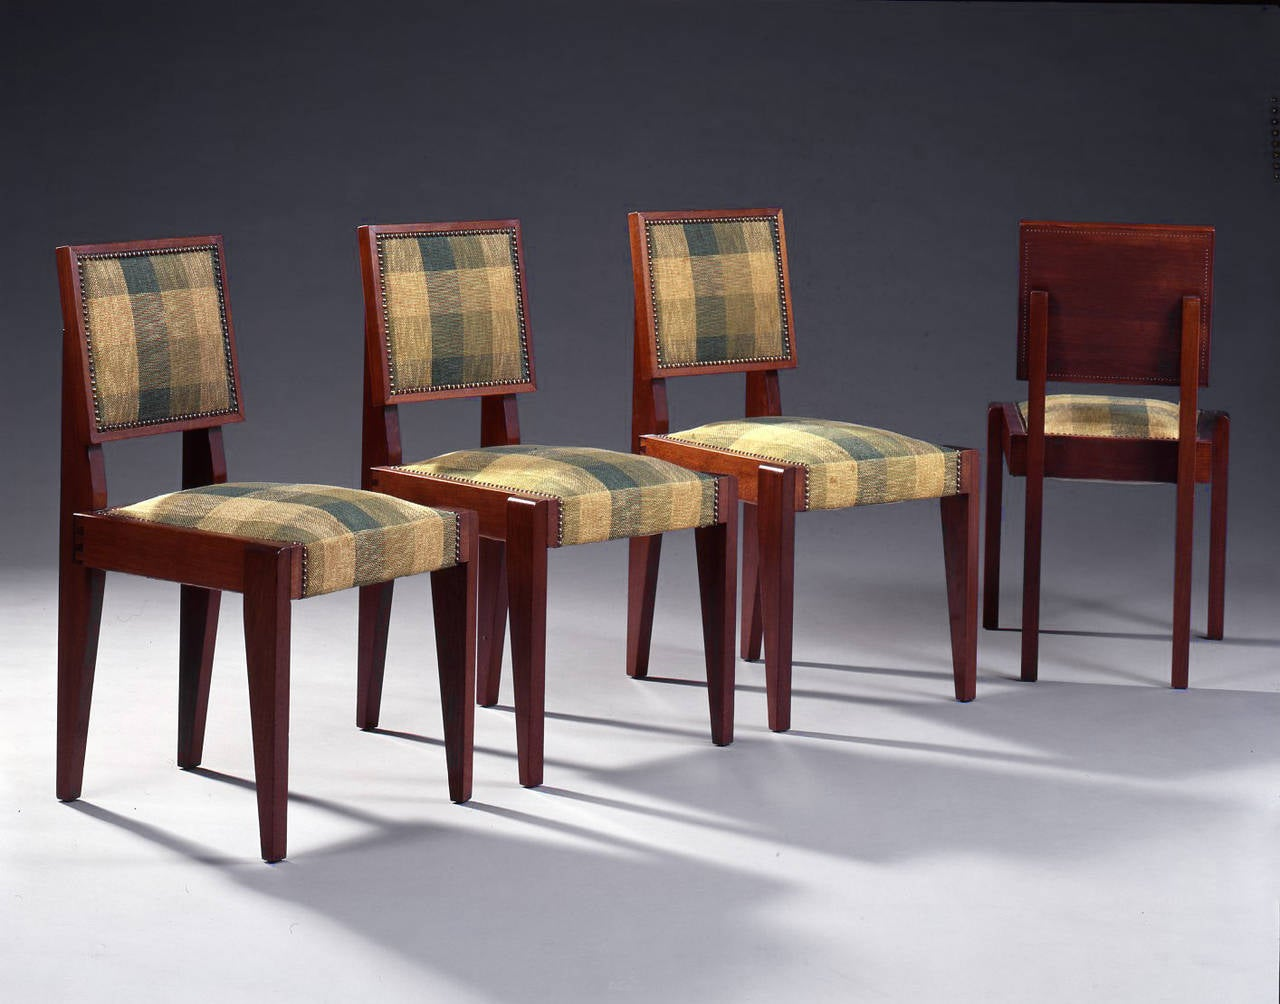 Andr sornay suite of four rosewood chairs circa 1927 - Dessus de chaises ...